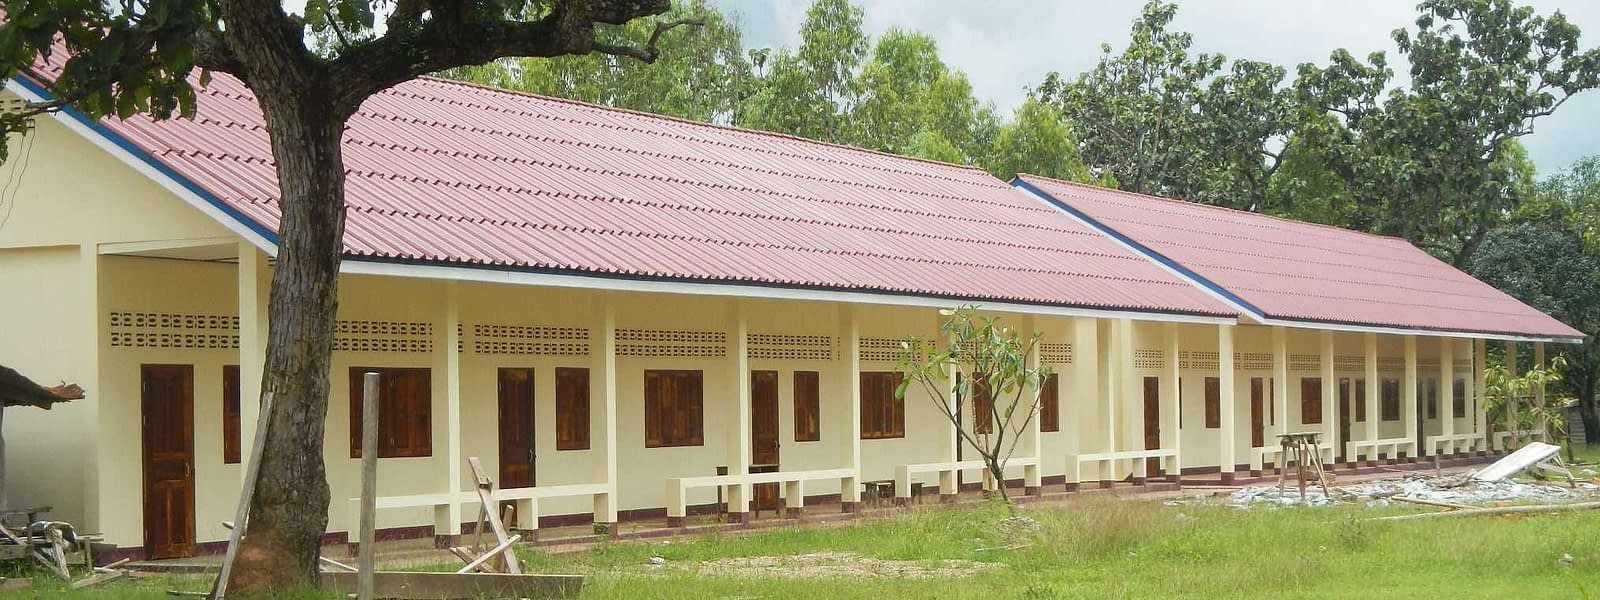 Nong Tae completed rural community development project